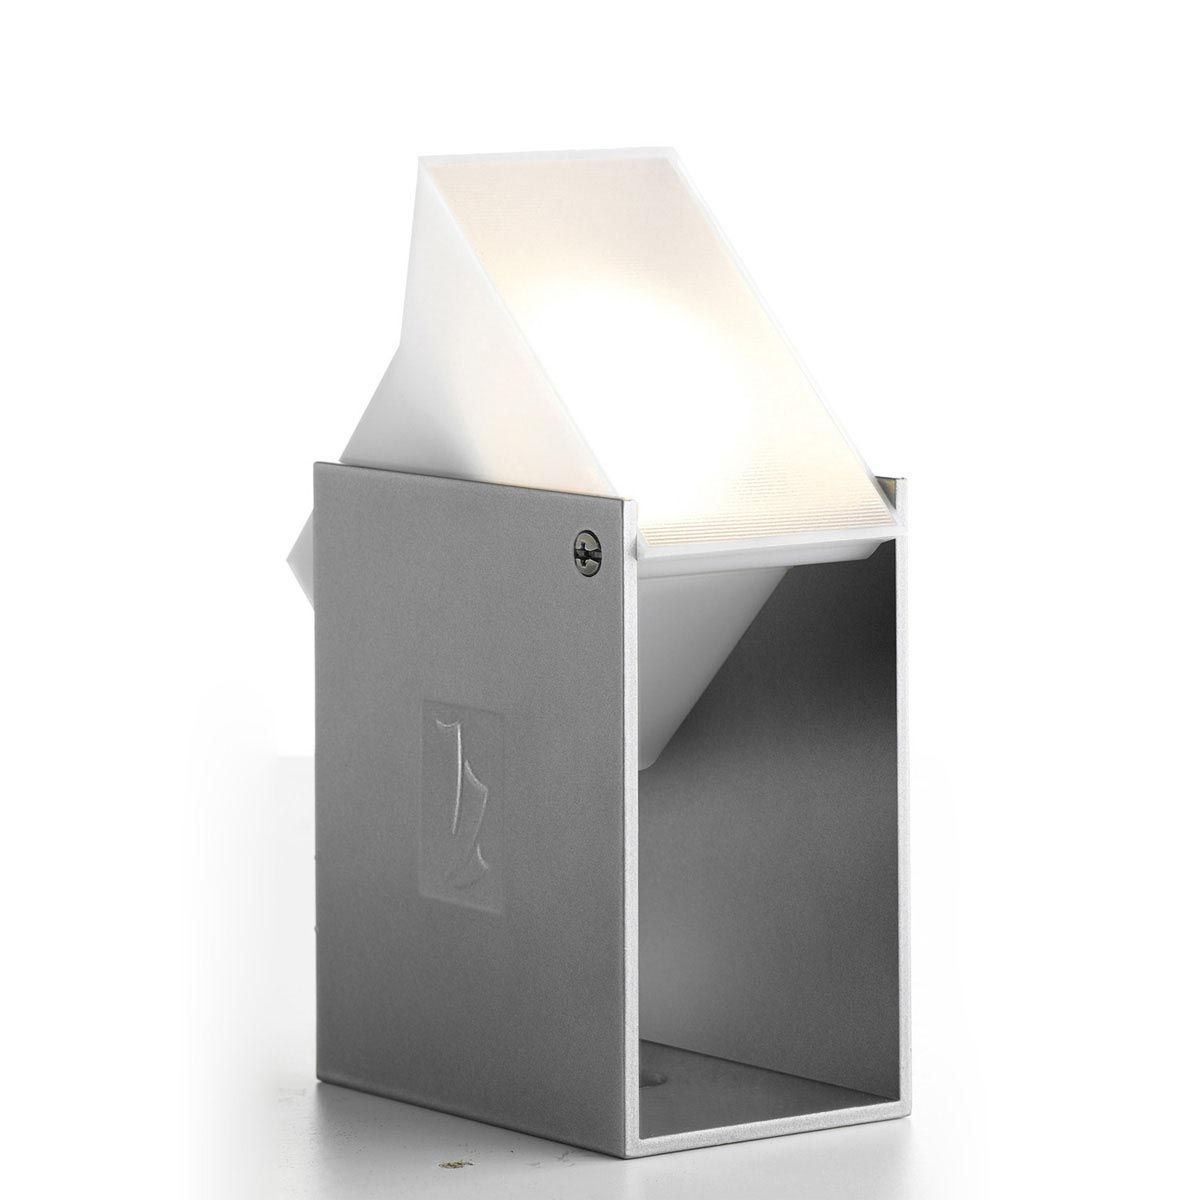 Wandleuchte Pearl, Aluminium, anthrazit, 3 W LED, warmweiss, 12 V, 115 x 65 x 95 mm